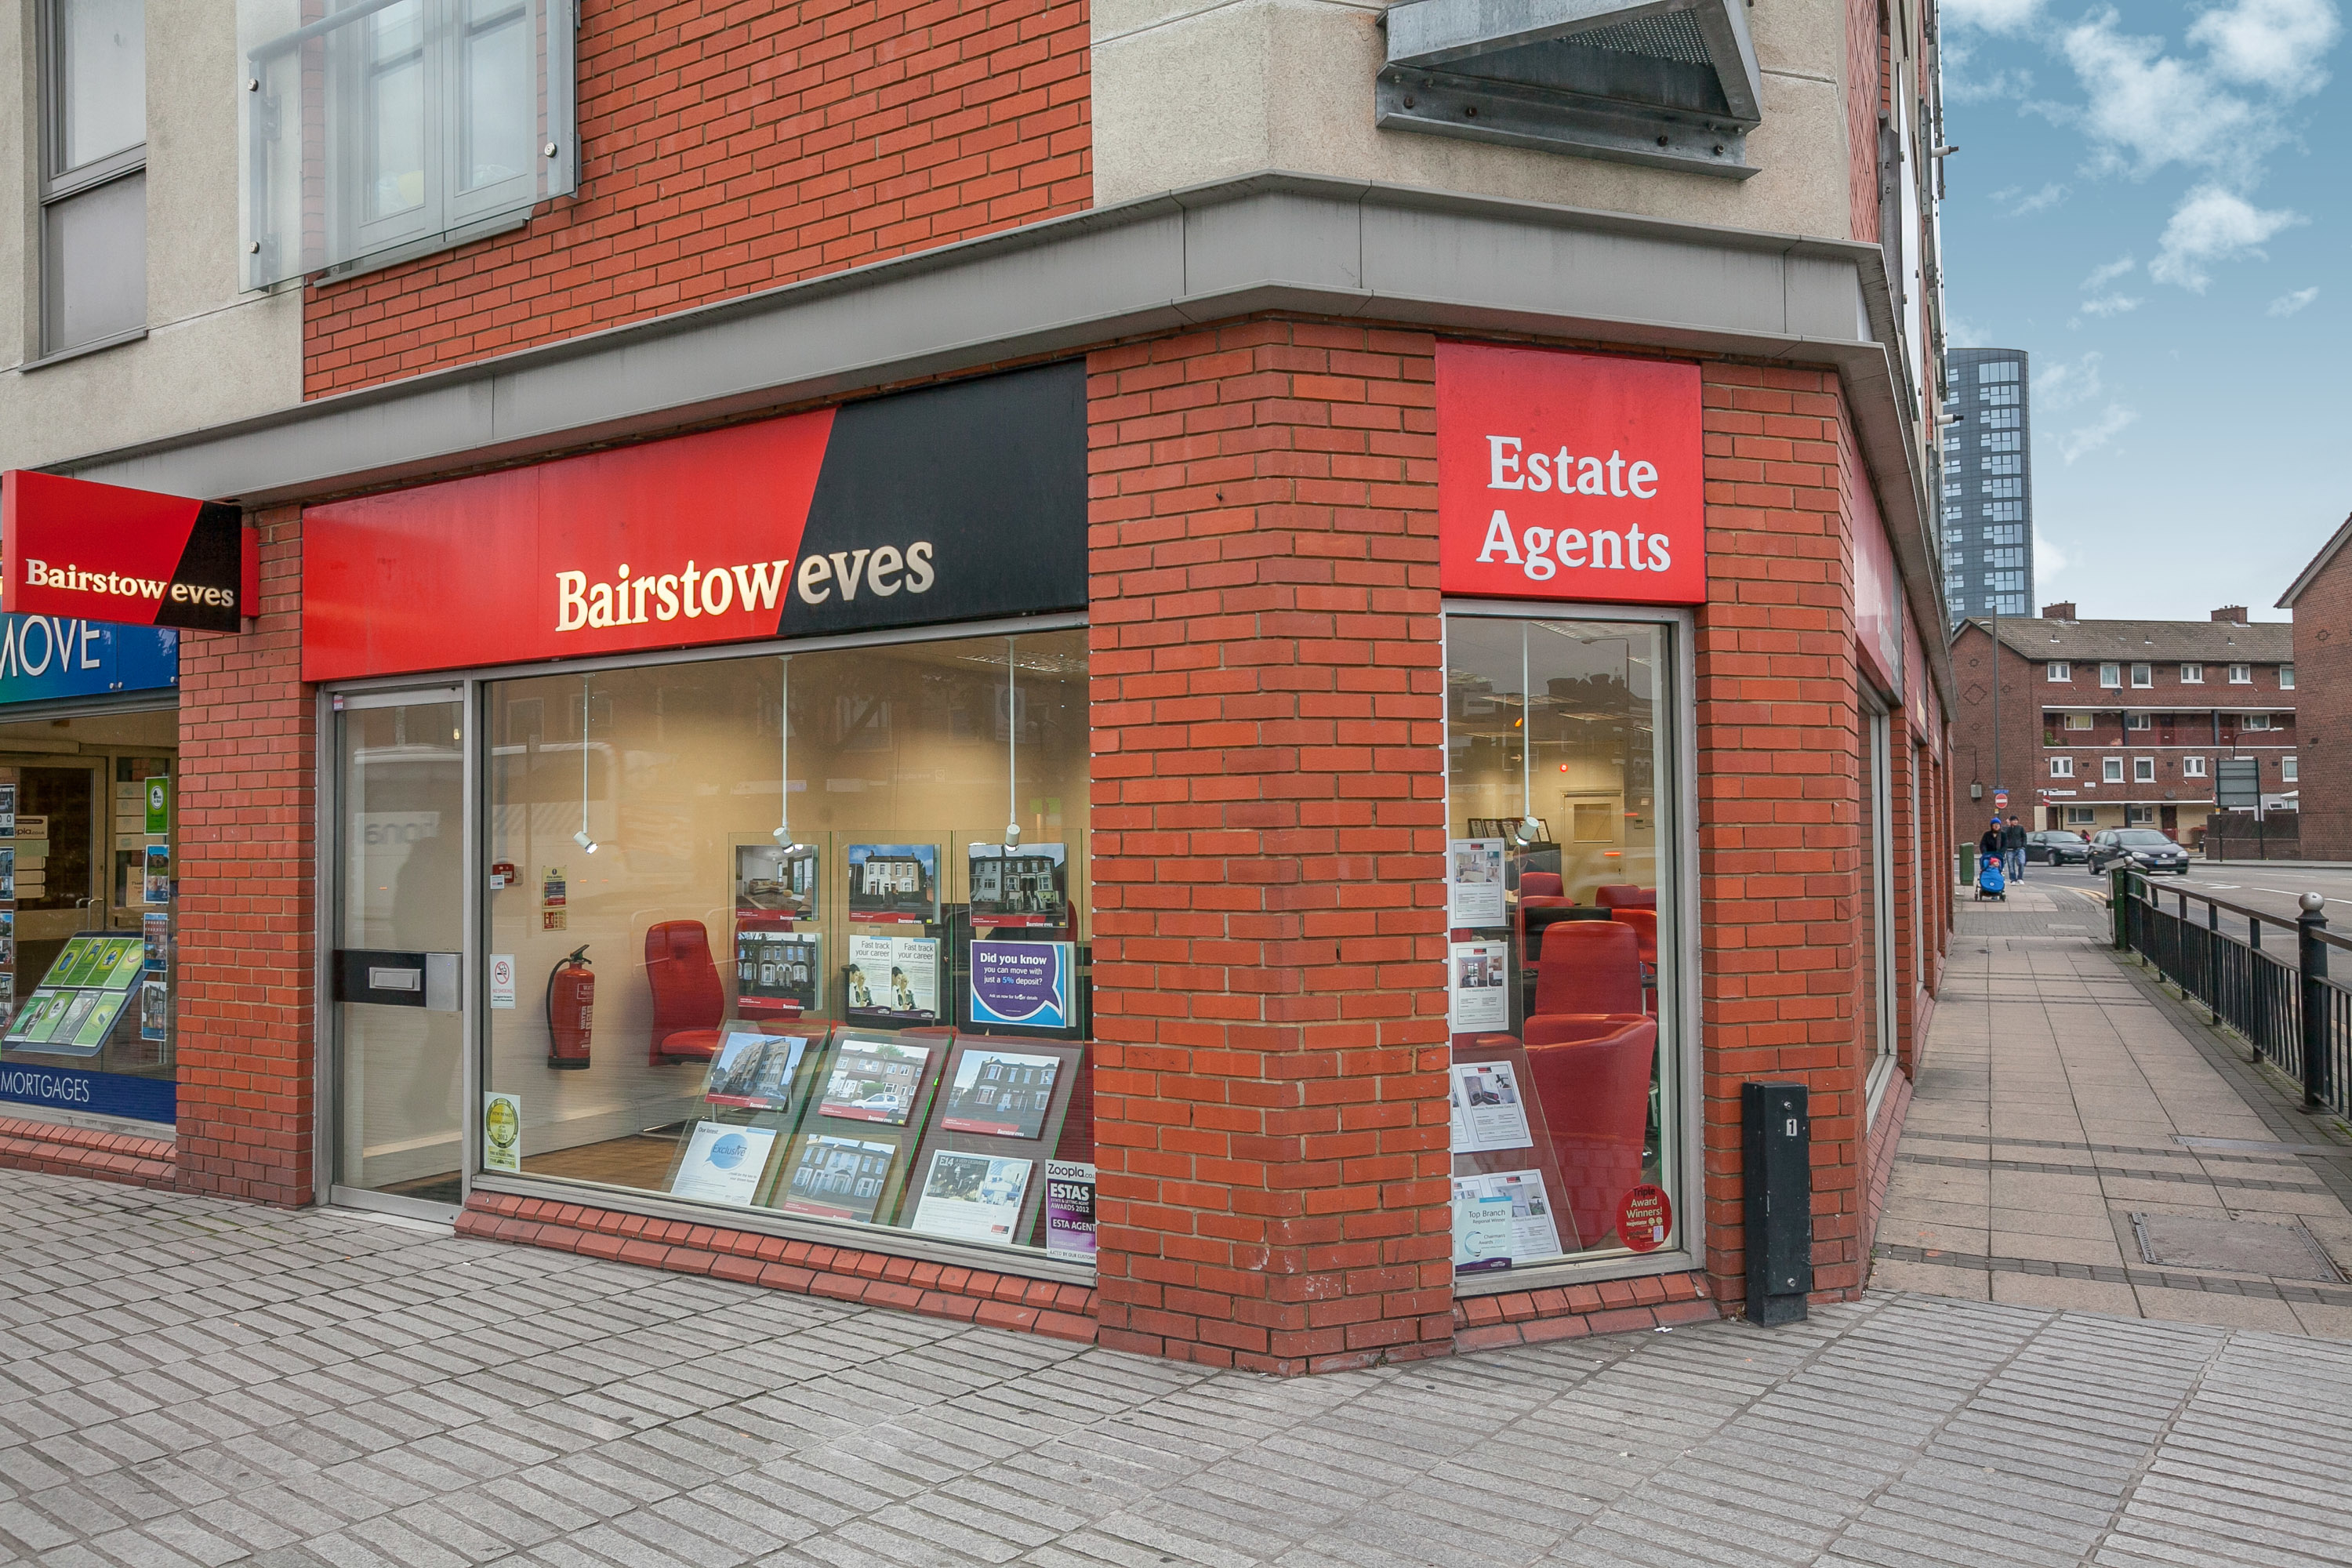 Bairstow Eves - Estate Agents in Stratford E15 1NS - 192.com